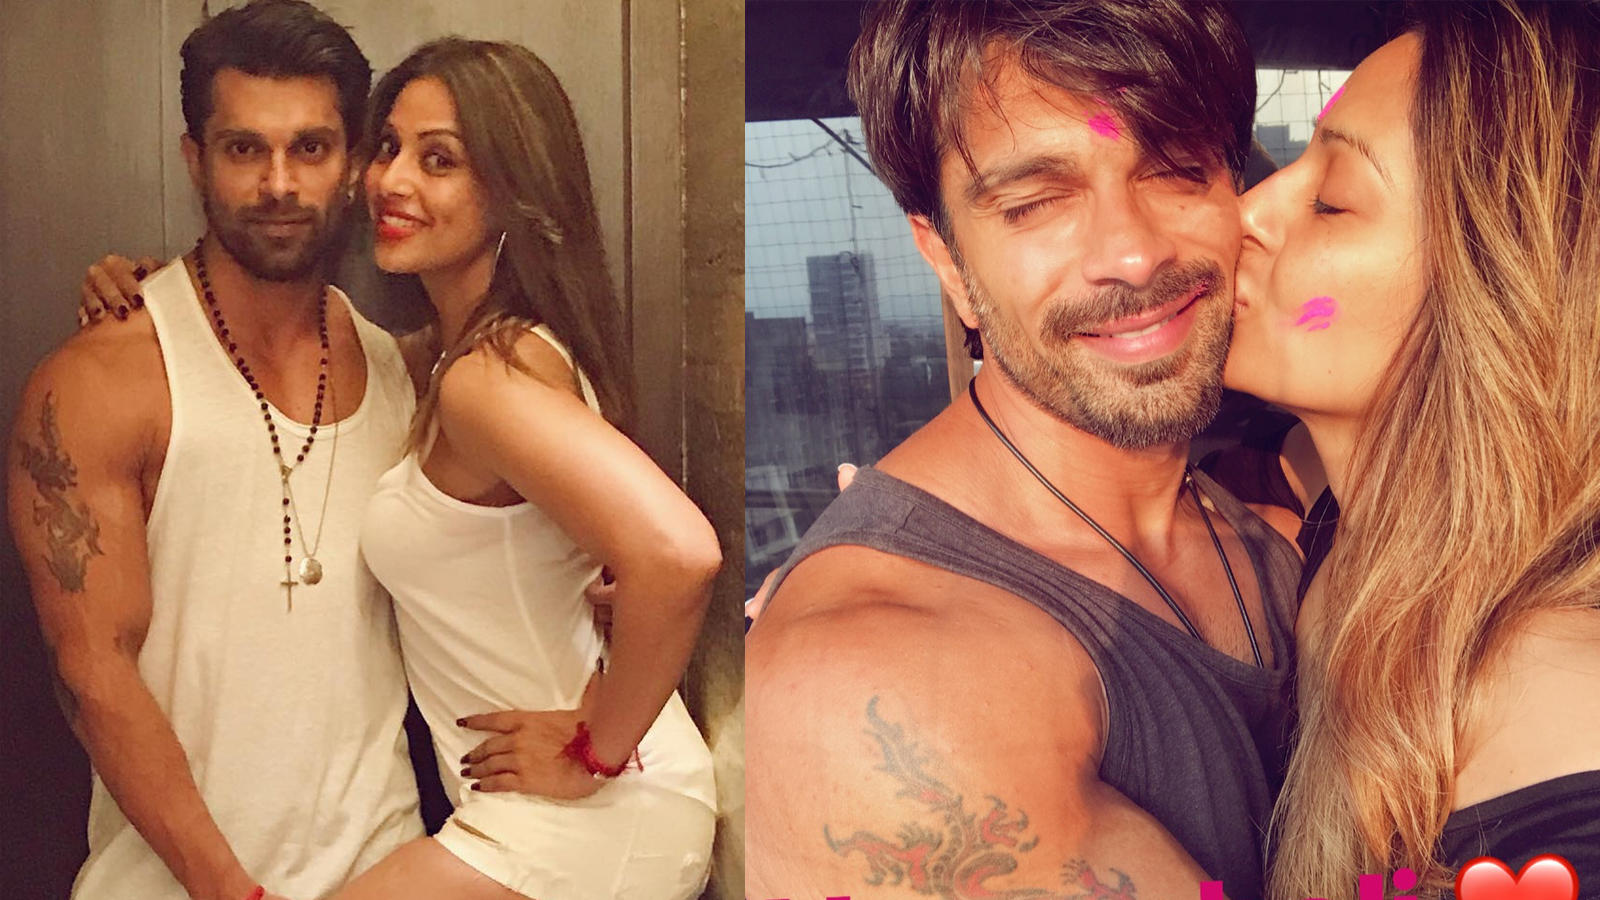 Bipasha Basu on her marriage with Karan Singh Grover: It's fulfilling experience